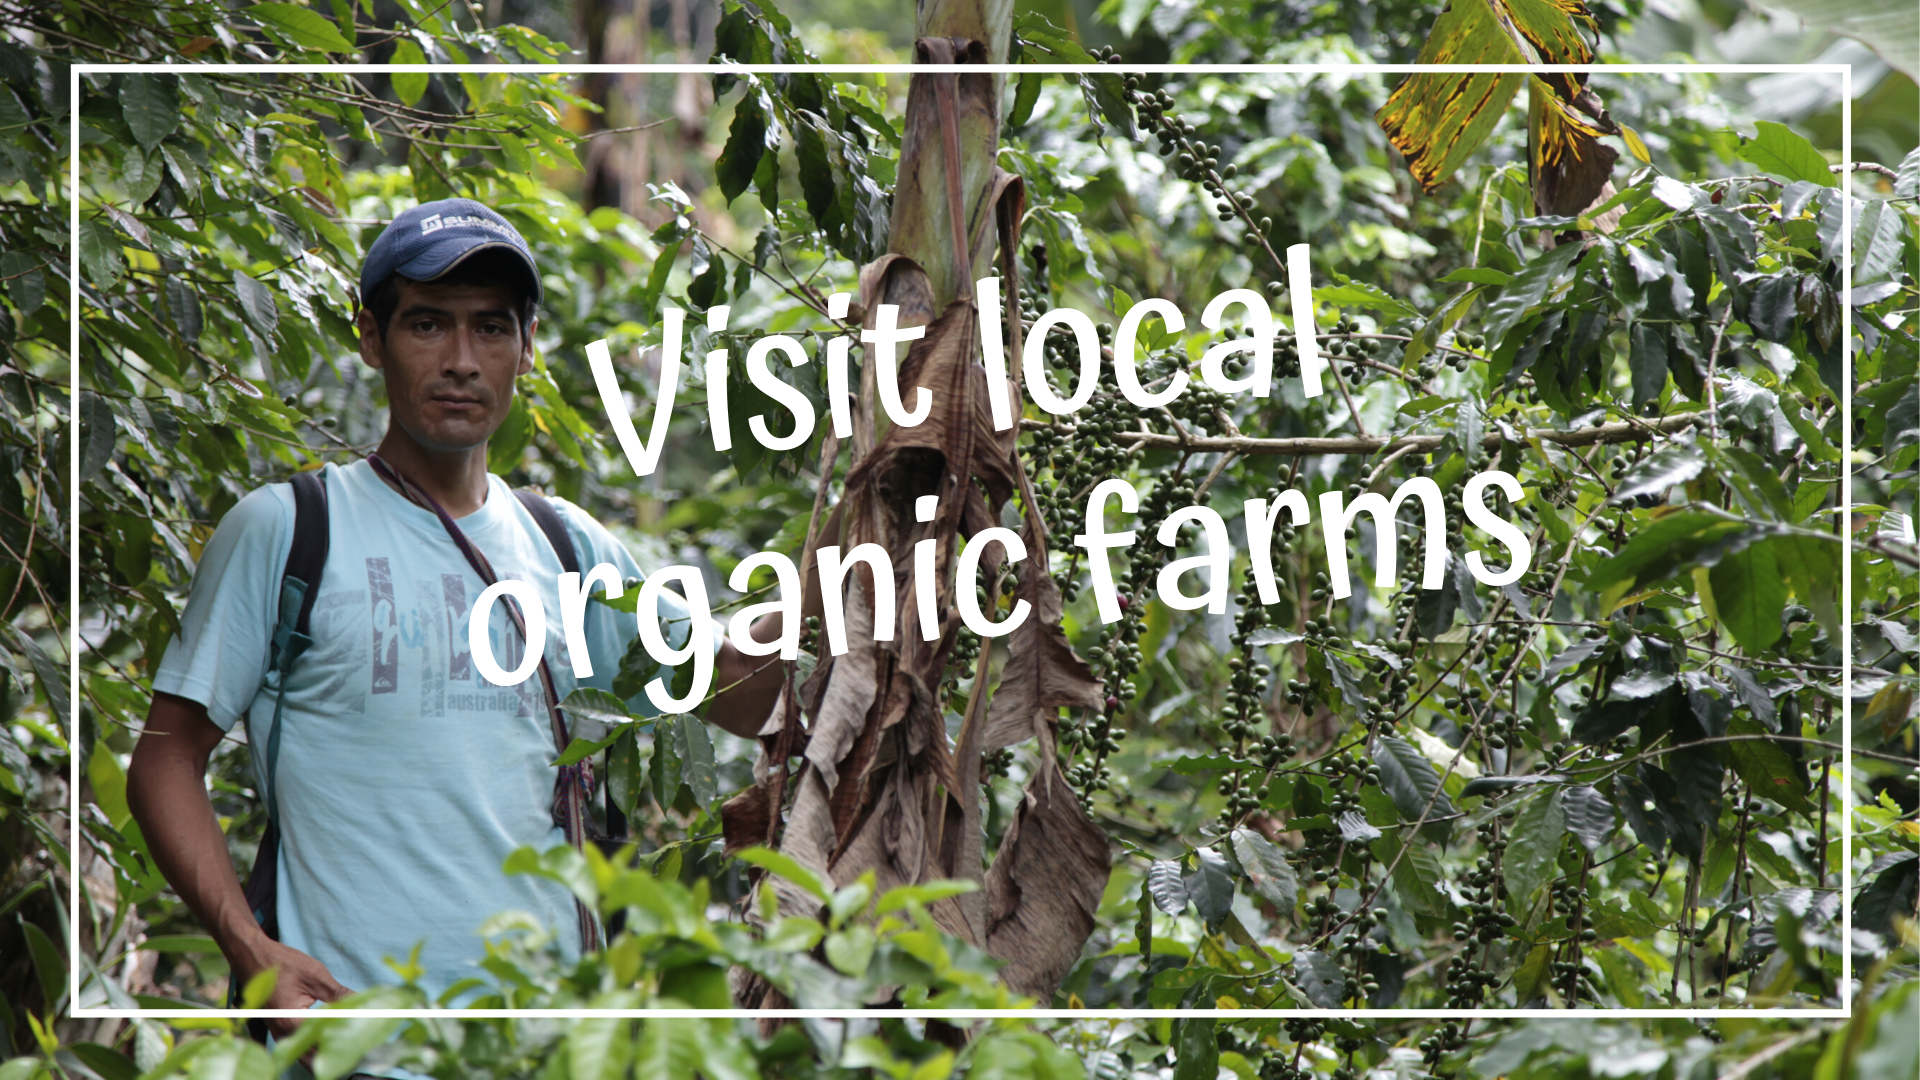 Visit local organic farms